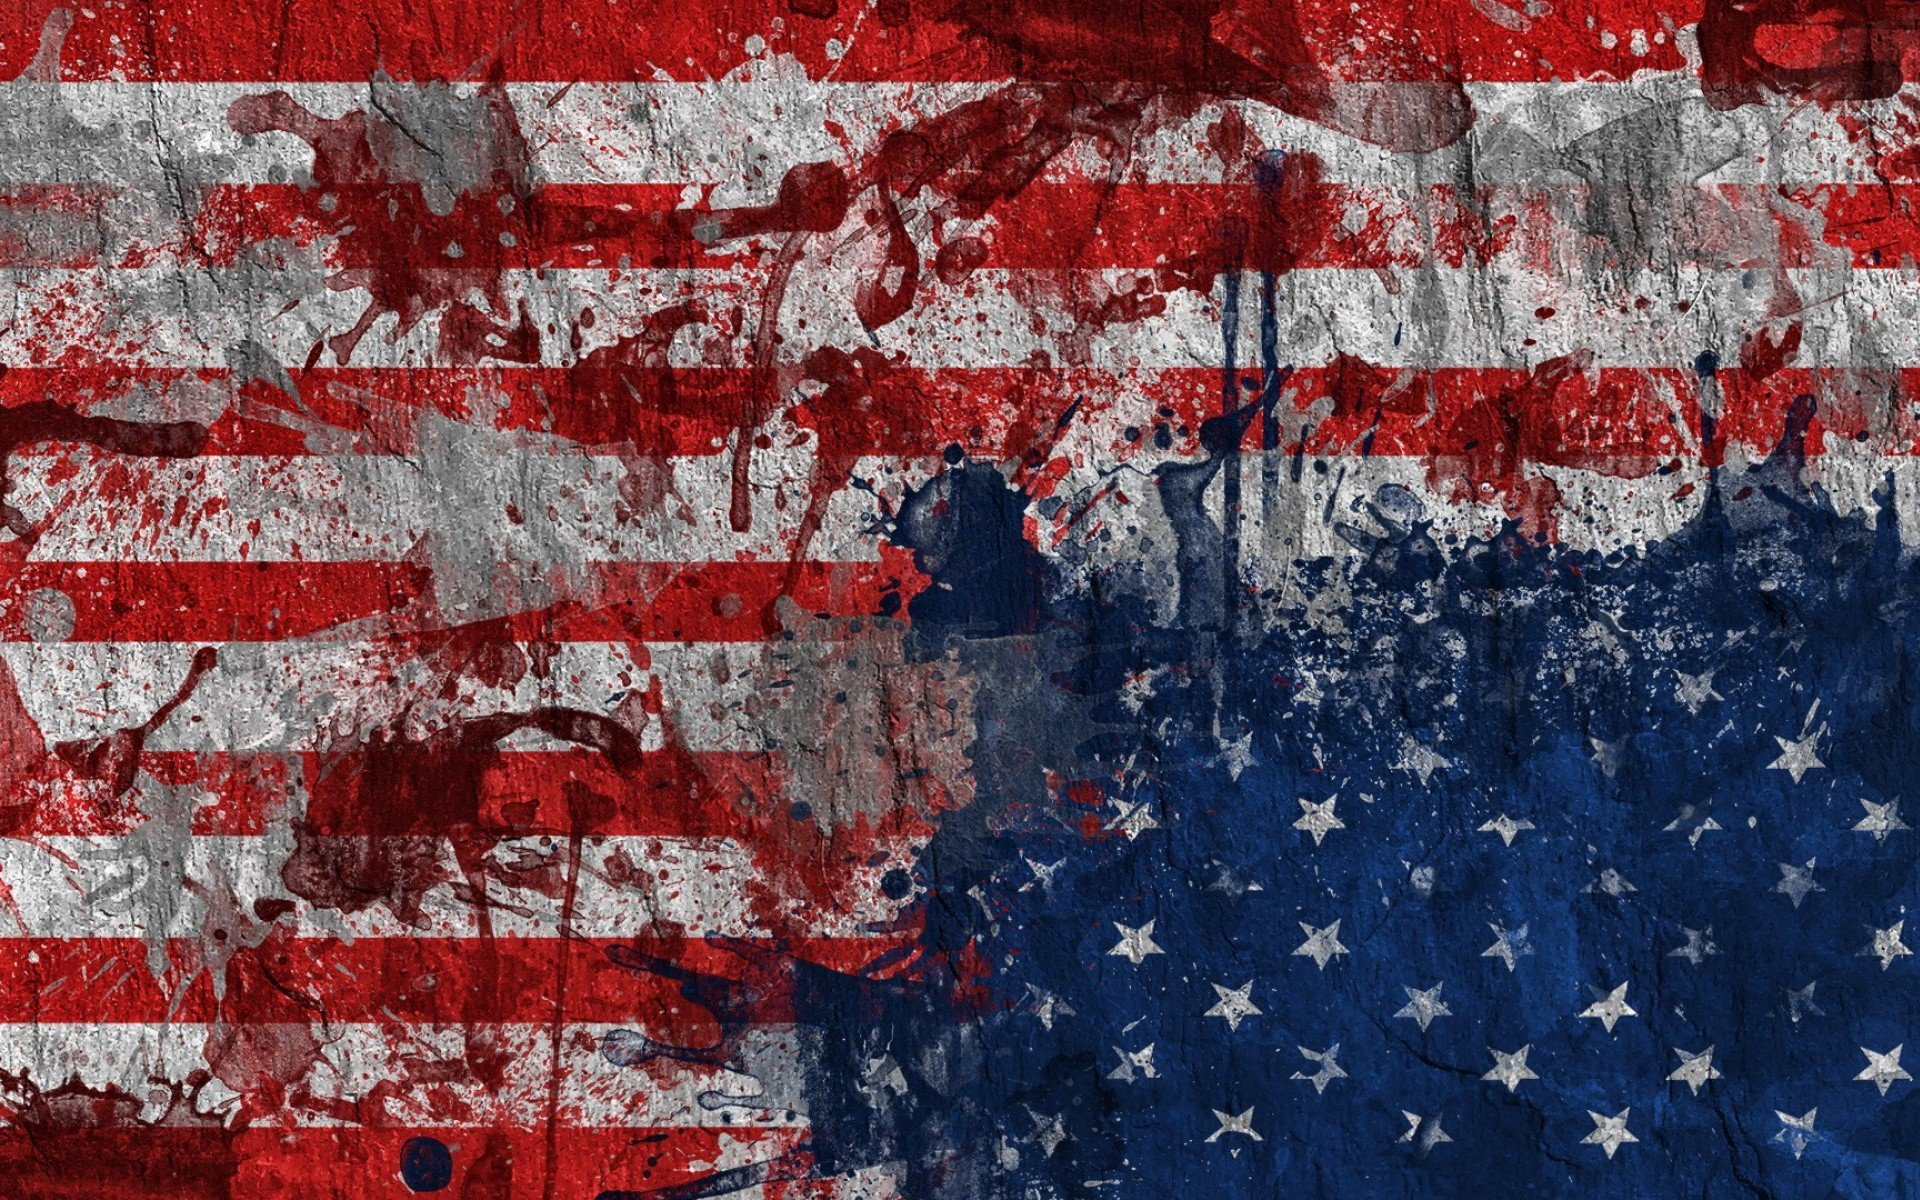 american flag backgrounds image wallpaper 1920x1200